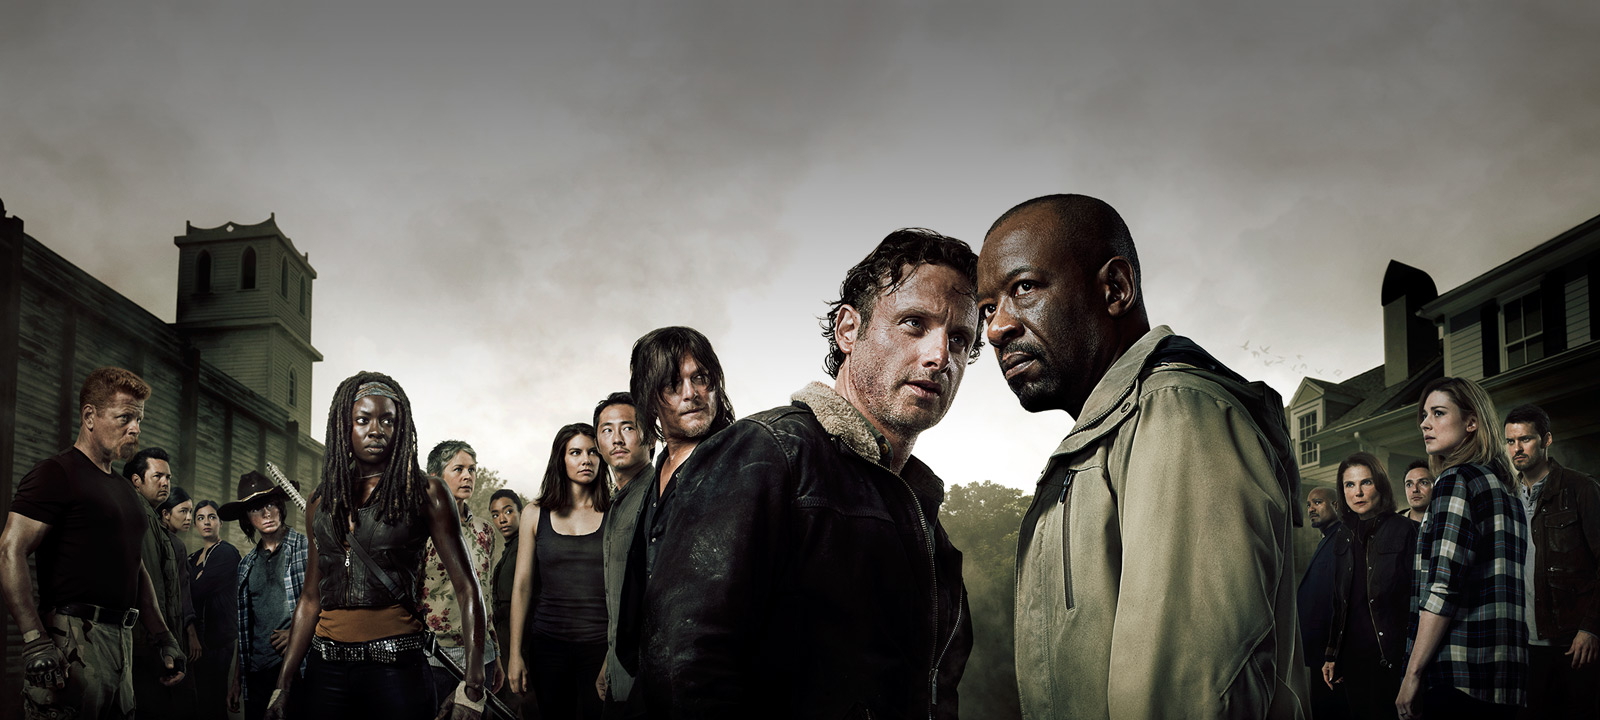 The Leadership Styles of The Walking Dead